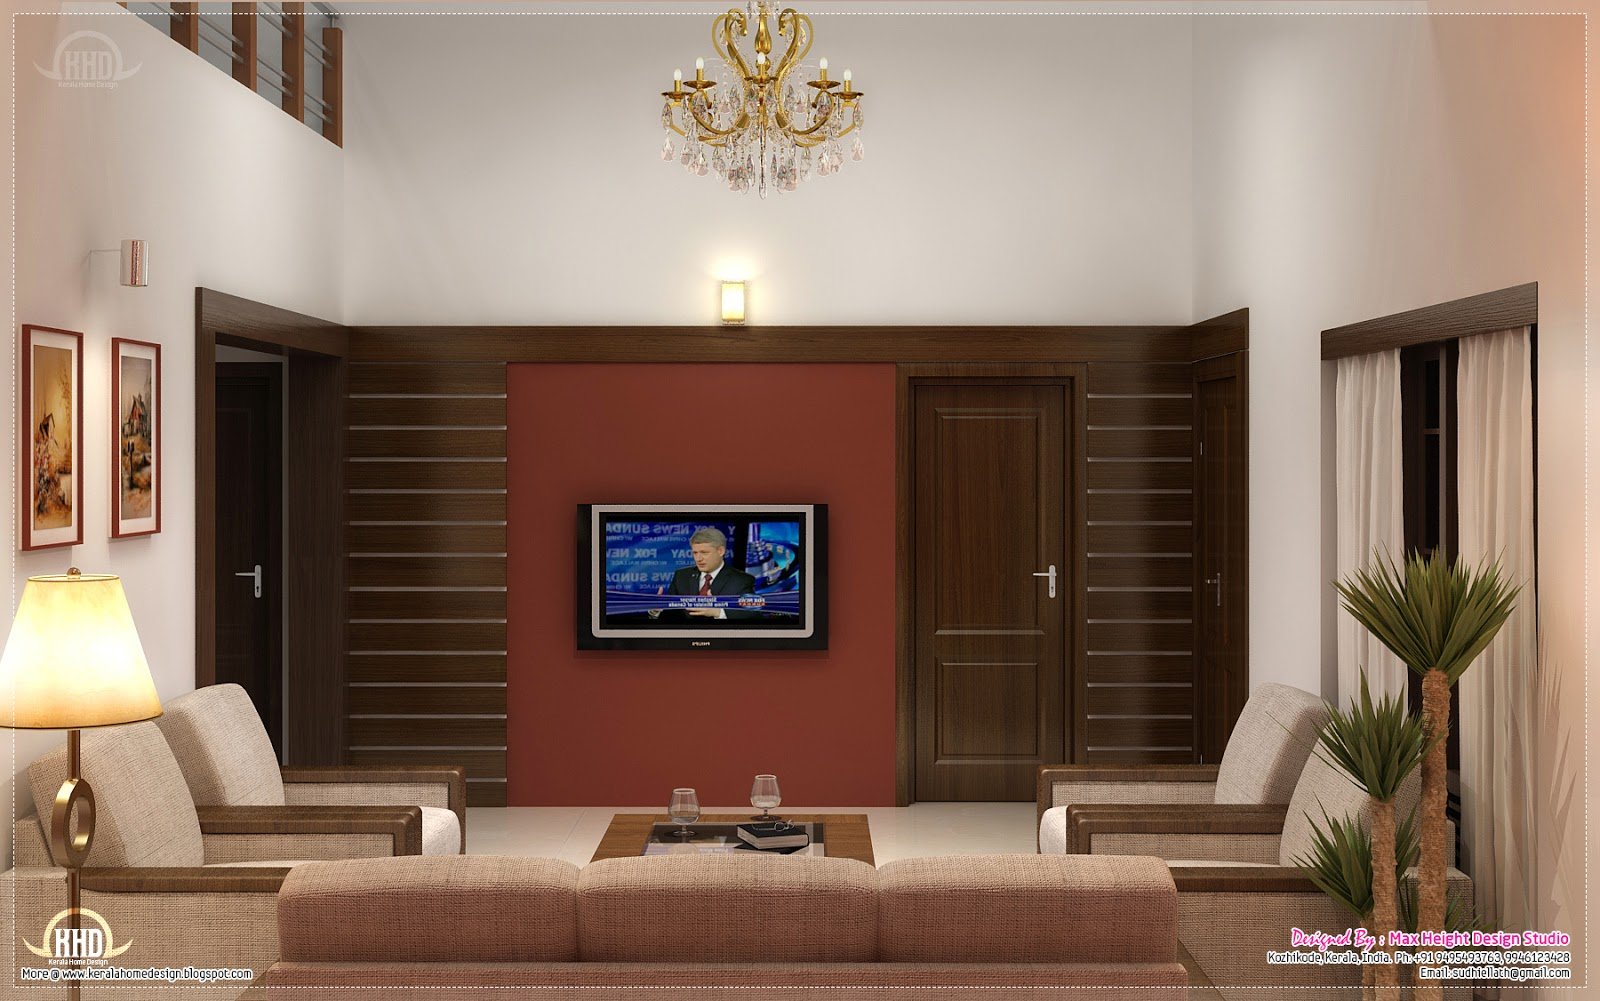 Home interior design ideas house design plans for Living room interior in kerala